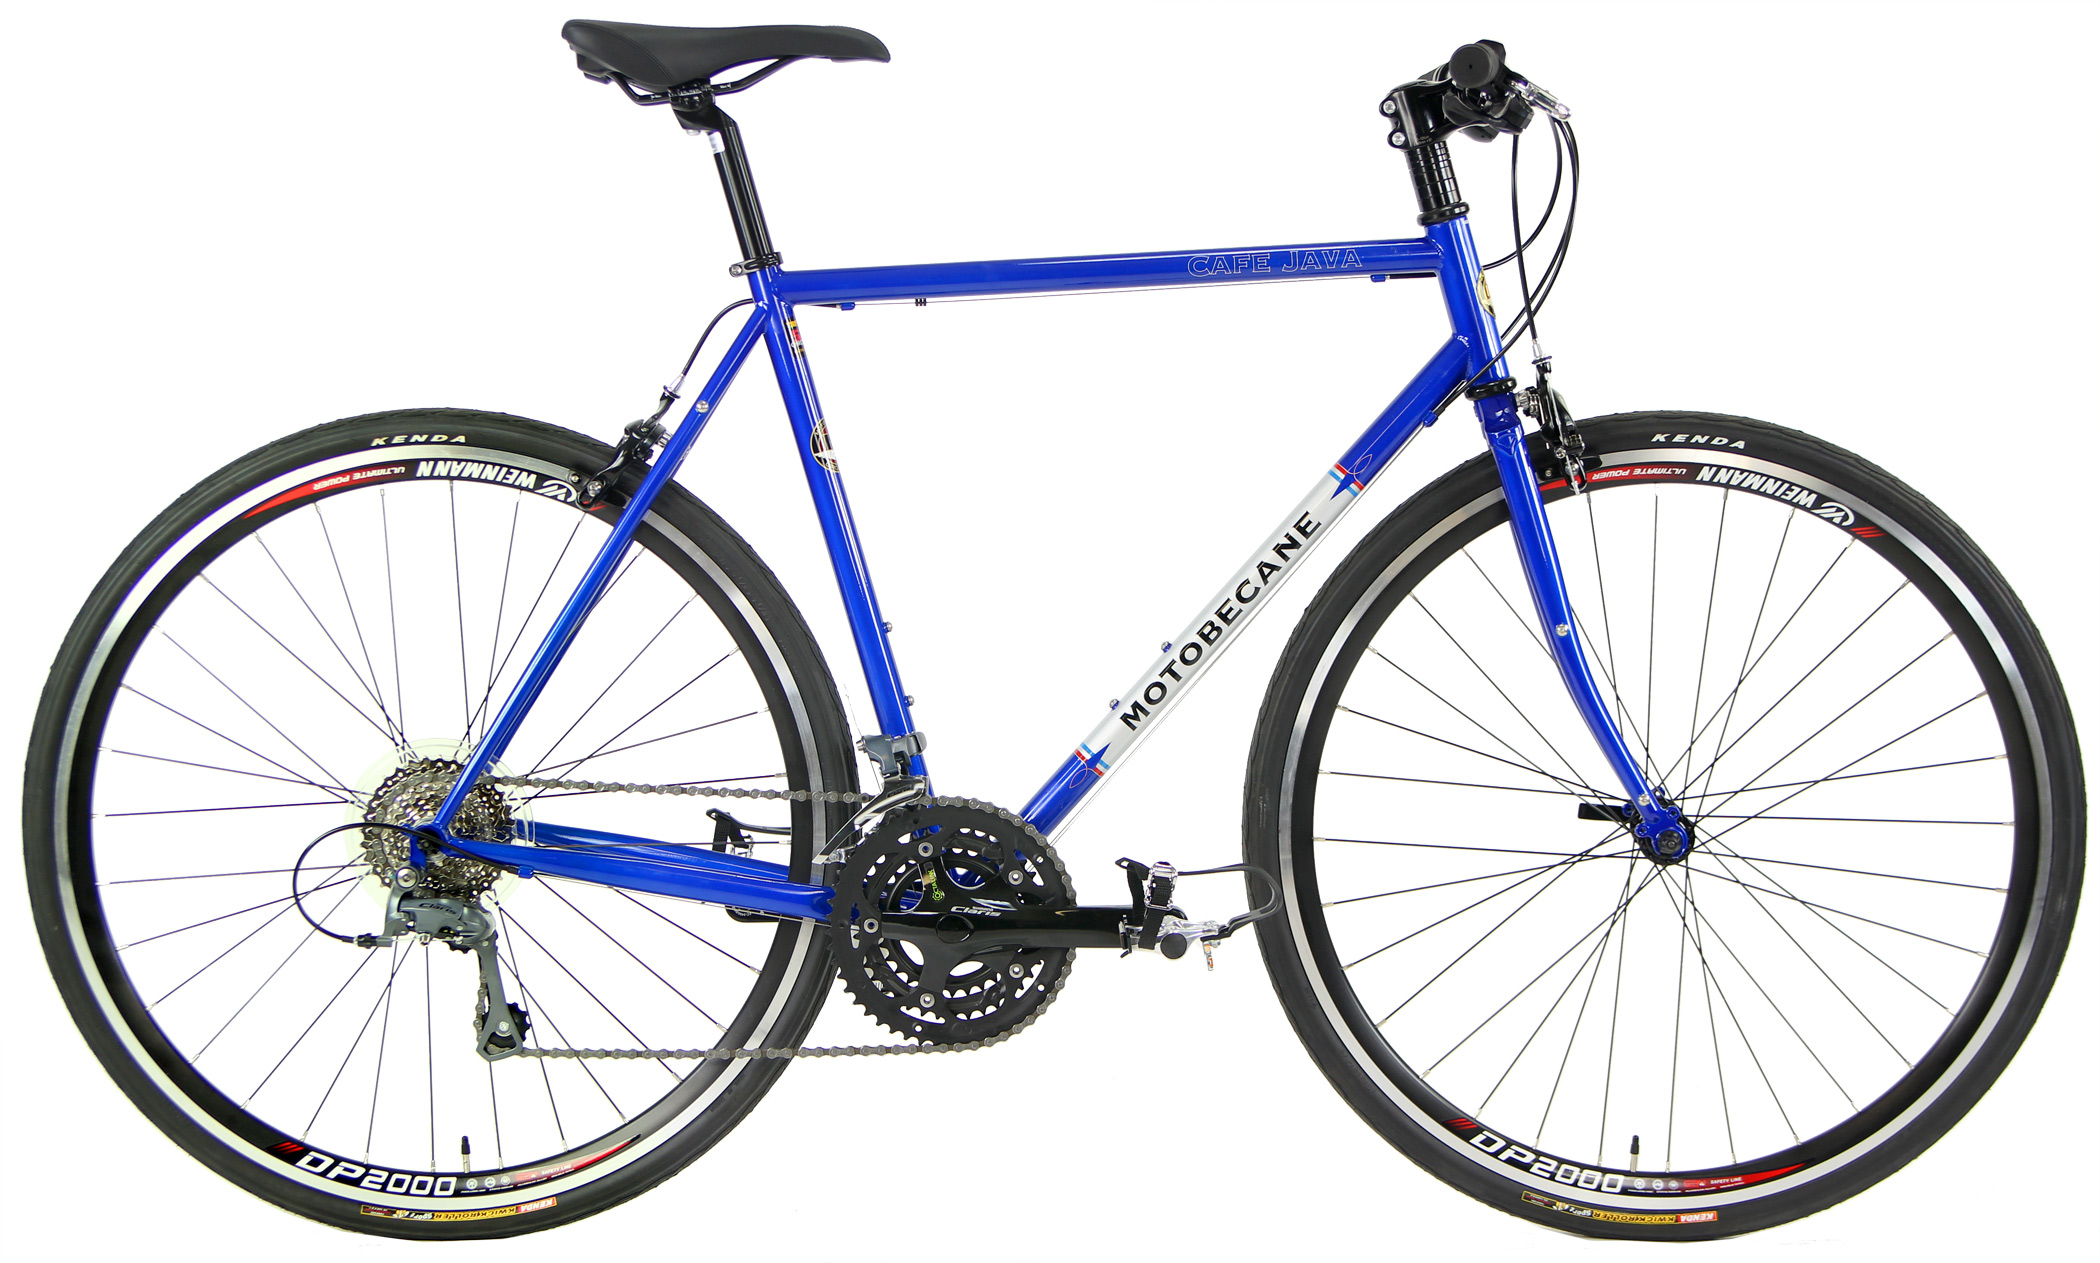 Save Up to 60% Off NEW High Grade Reynolds Steel Road Bikes On Sale ...